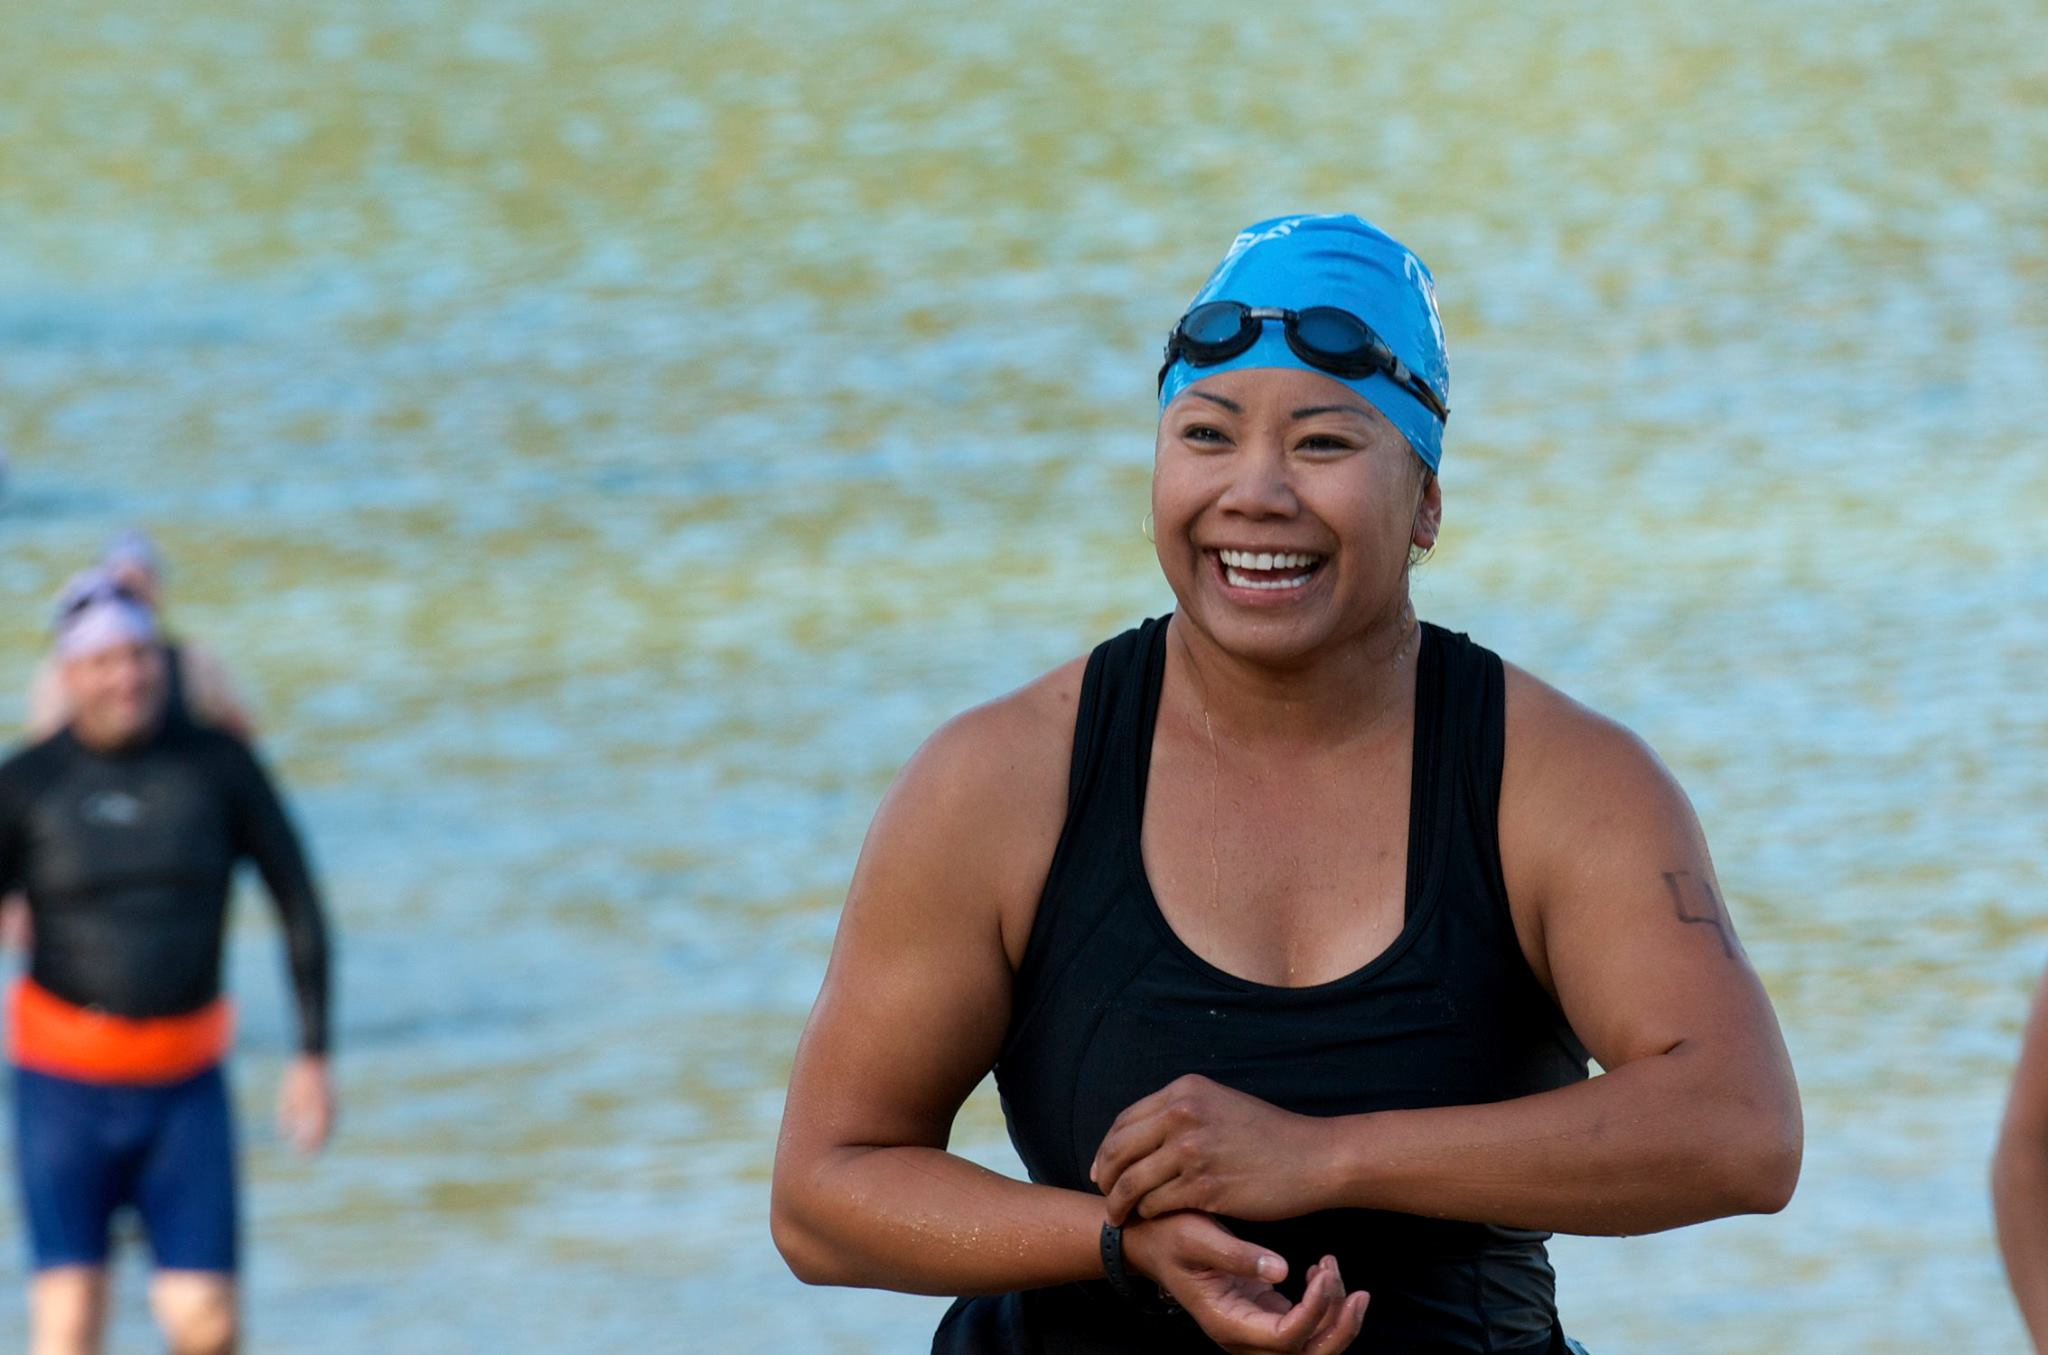 Oakhurst resident Jenny Peter emerges from Bass Lake at the Bass Lake Classic Triathlon 2014- photo by Monique Wales